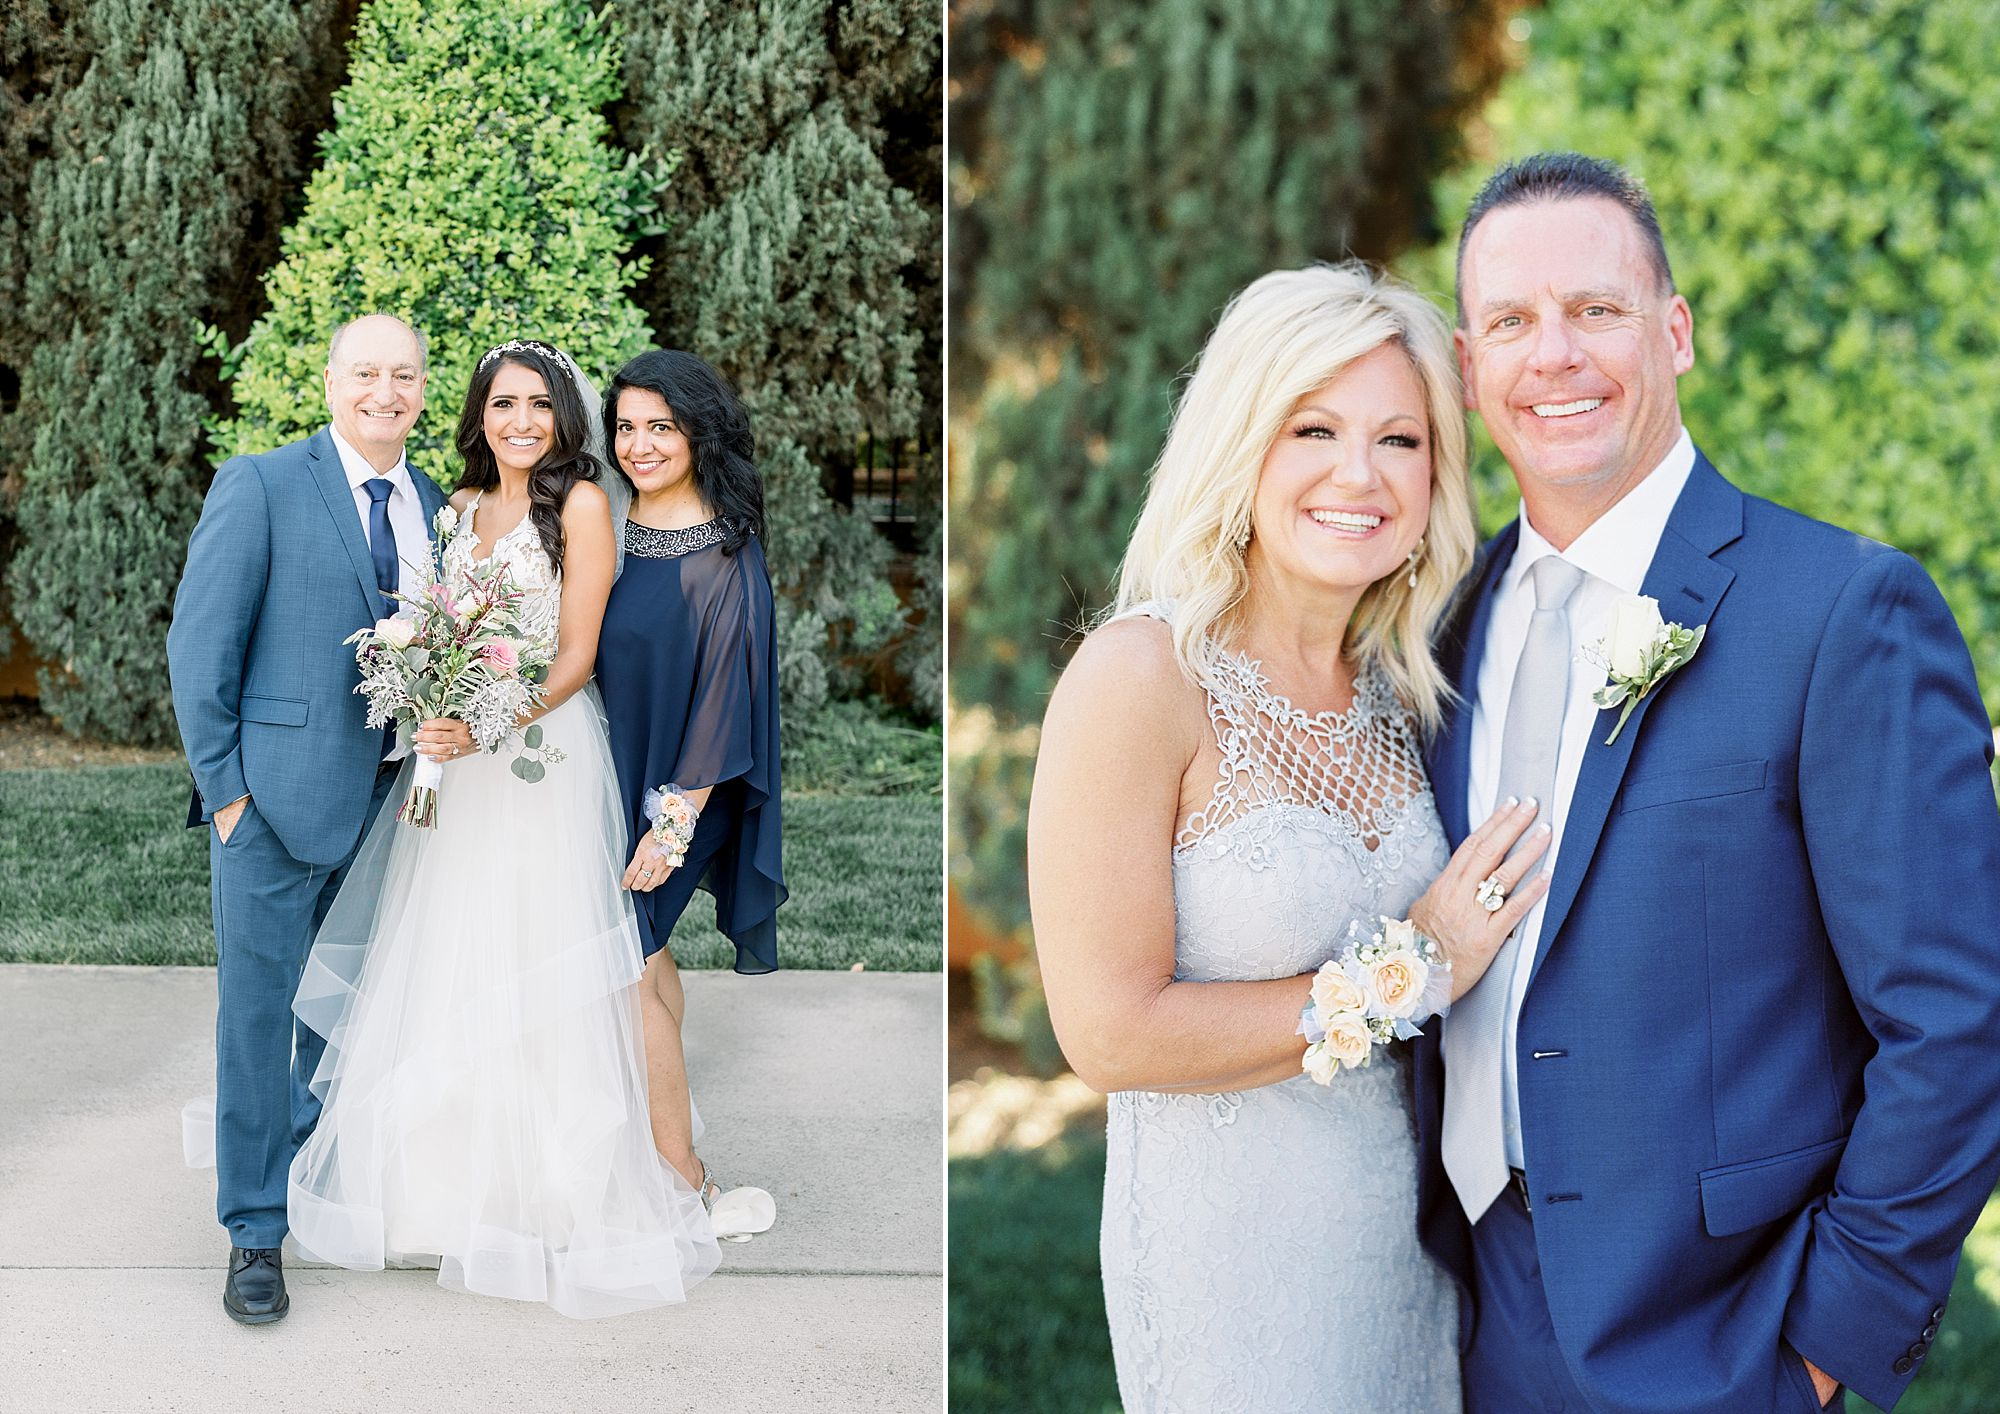 The River Mill Wedding Stockton - Ashley Baumgartner - Stockton Wedding Photographer - Sacramento Wedding Photography - Hybrid and Film Photographer - Sacramento Film Photographer_0030.jpg